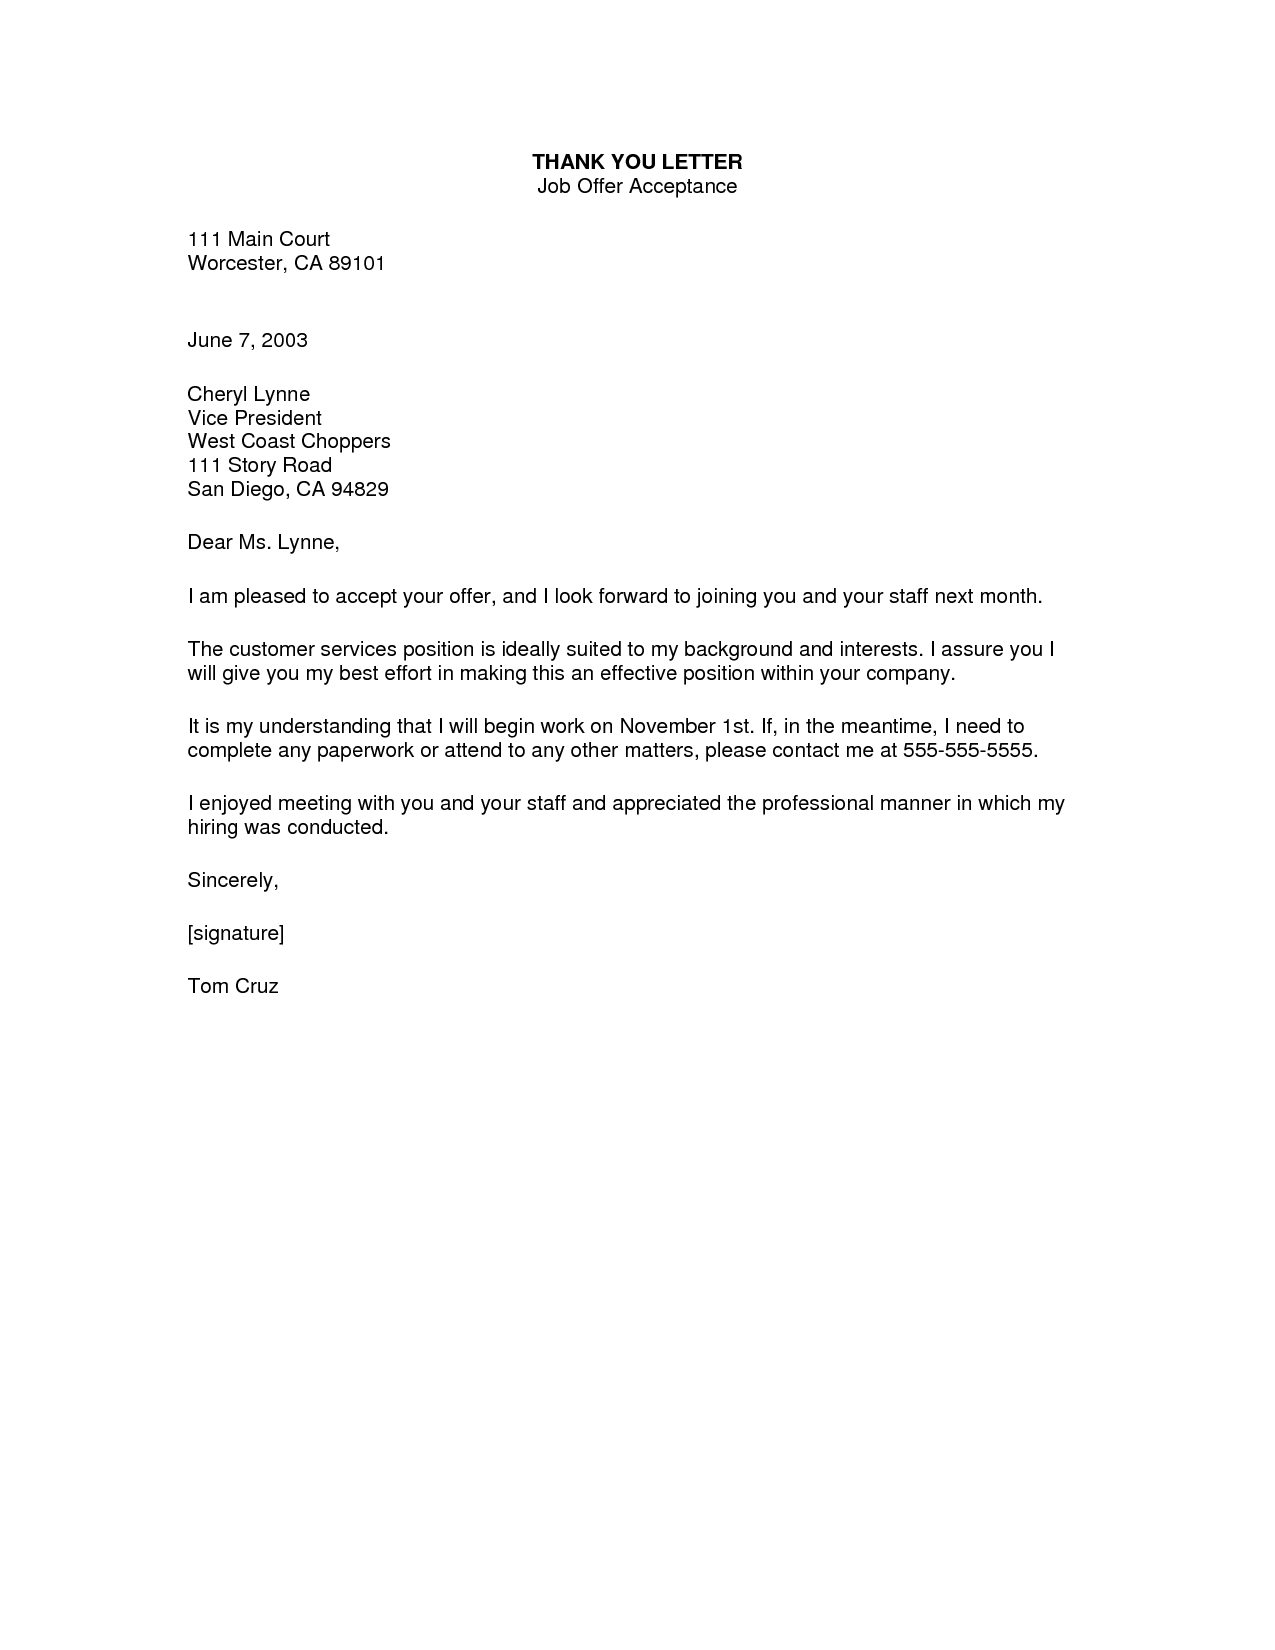 Thank You Letter Format Scholarship Choice Image Letter Format Thank You  Letter Format Scholarship Choice Image